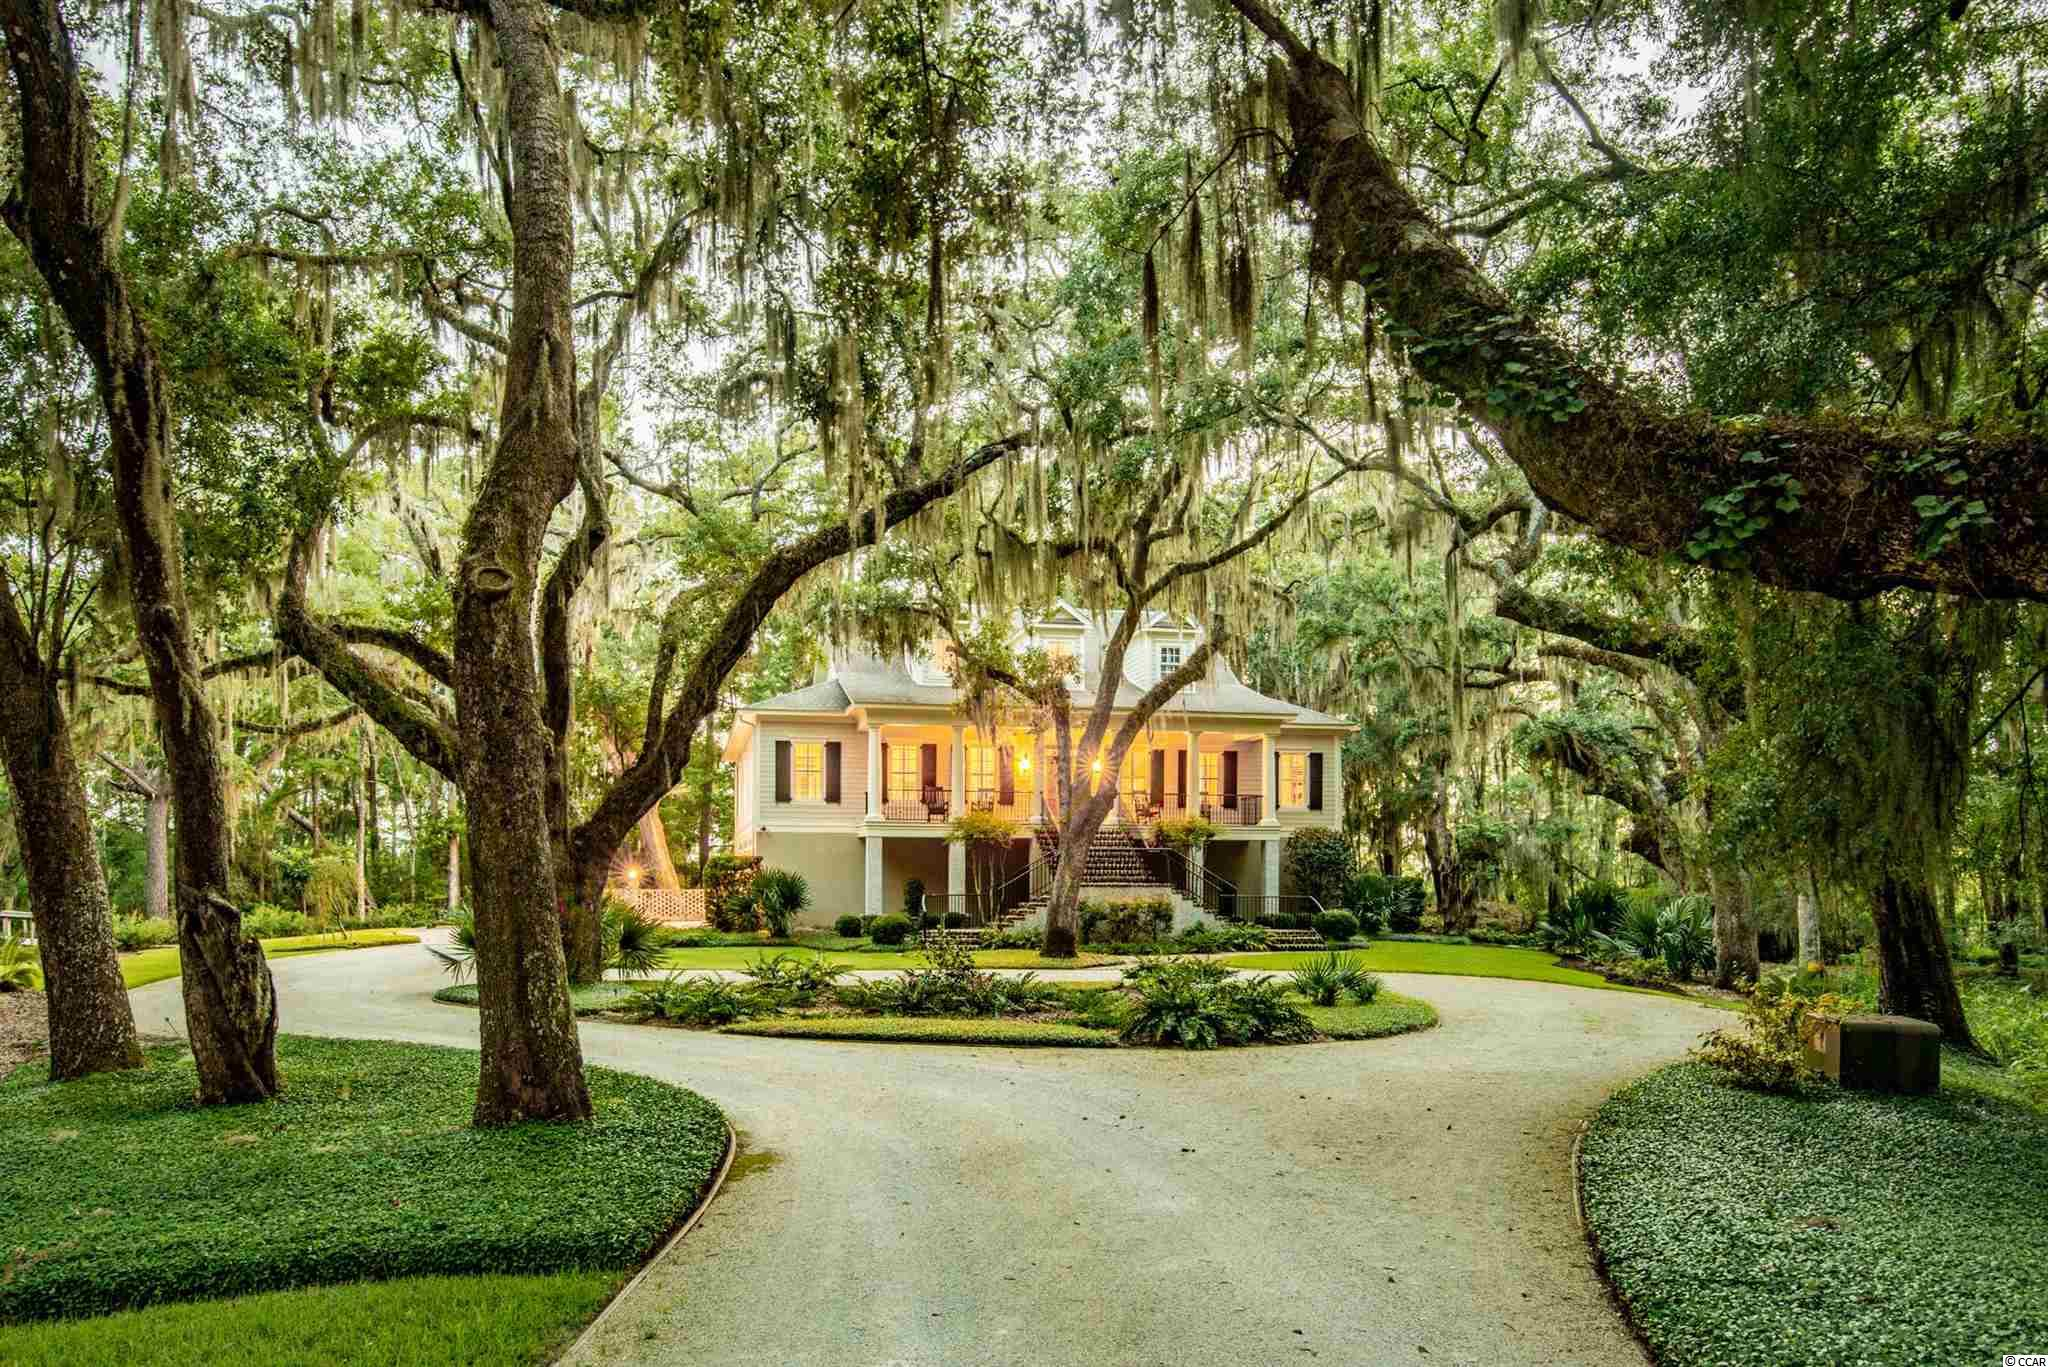 """Welcome to 'The Landing"""" in the Oak Pointe Estates section of Willbrook Plantation. This premier custom-built home sits on 1.75 acres that once housed the plantation barns and warehouses along Oatland Creek. Owners have access to the Intracoastal/Waccamaw River from the private dock. Nestled under moss-covered live oaks that have beautiful up-lighting at night and lush landscaping, this home has it all. Features include Hardi plank and brick exterior, upgraded Andersen windows, elevator to all levels, a gas burning fireplace, Rinnai tankless water heater with a 59-gallon holding tank, 6-inch galvanized gutters, fenced in back yard with a bulkhead, Circa lighting, interior handmade stair rails, Brazilian wood floors, plantation shutters, surround sound throughout, and security system. There is a well for the irrigation system that also works pulling water from the river.  The main living area is open with a chef's kitchen that includes a Wolfe range with antique fireback, custom-built soft close cabinets, and Italian countertops. Walk-in Pantry features a built-in desk, wine cooler, and laundry area with plenty of storage.  Living area with custom cabinets and gas burning fireplace opens up to the magnificent porch that runs the length of the home with amazing views! Two seating areas along with a dining table make this a perfect spot to enjoy the views, sunsets, and wildlife this location has to offer. The porches have outdoor speakers, 4 water faucets, and TVs. There is also an inviting front porch with rocking chairs. The powder room and wet bar lead into the office. There are spectacular views from every window!  The Owners Suite is on the main level complete with custom-built shelves in the closet, a beautiful bathroom with a walk-in shower, tub, and Italian counters. Nice sitting area with doors leading to the porch. Custom window treatments. Upstairs features three ensuite bedrooms with custom tiled bathrooms (two showers and one tub and pedestal sinks). All r"""